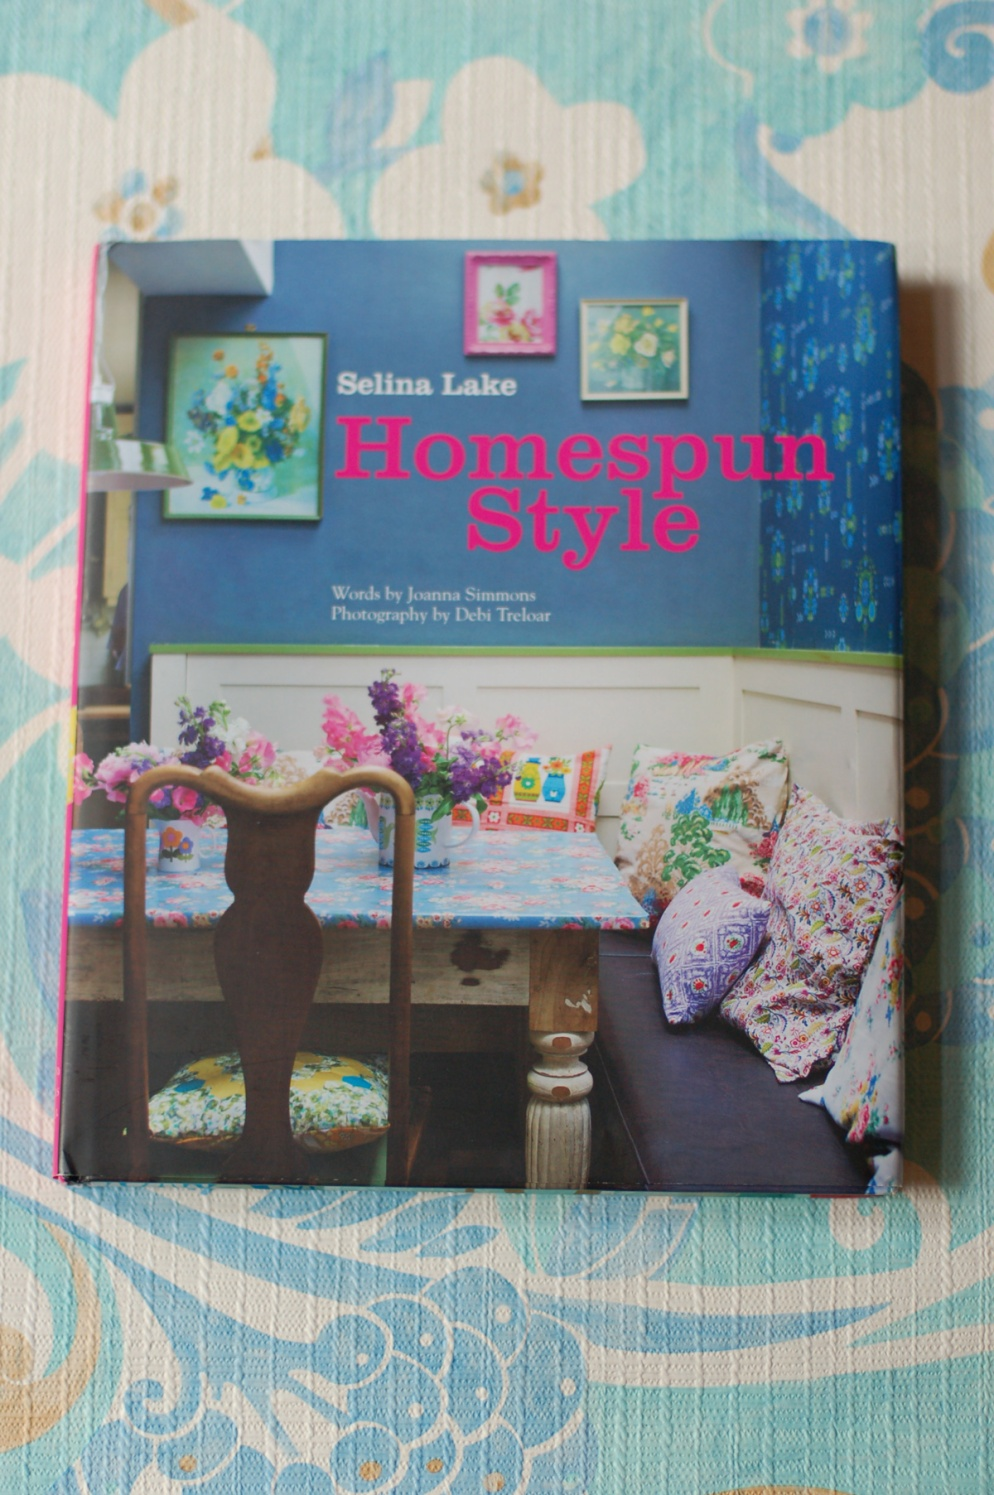 cover of the interior design book Homespun Style by Selina lake and Debi Treloar